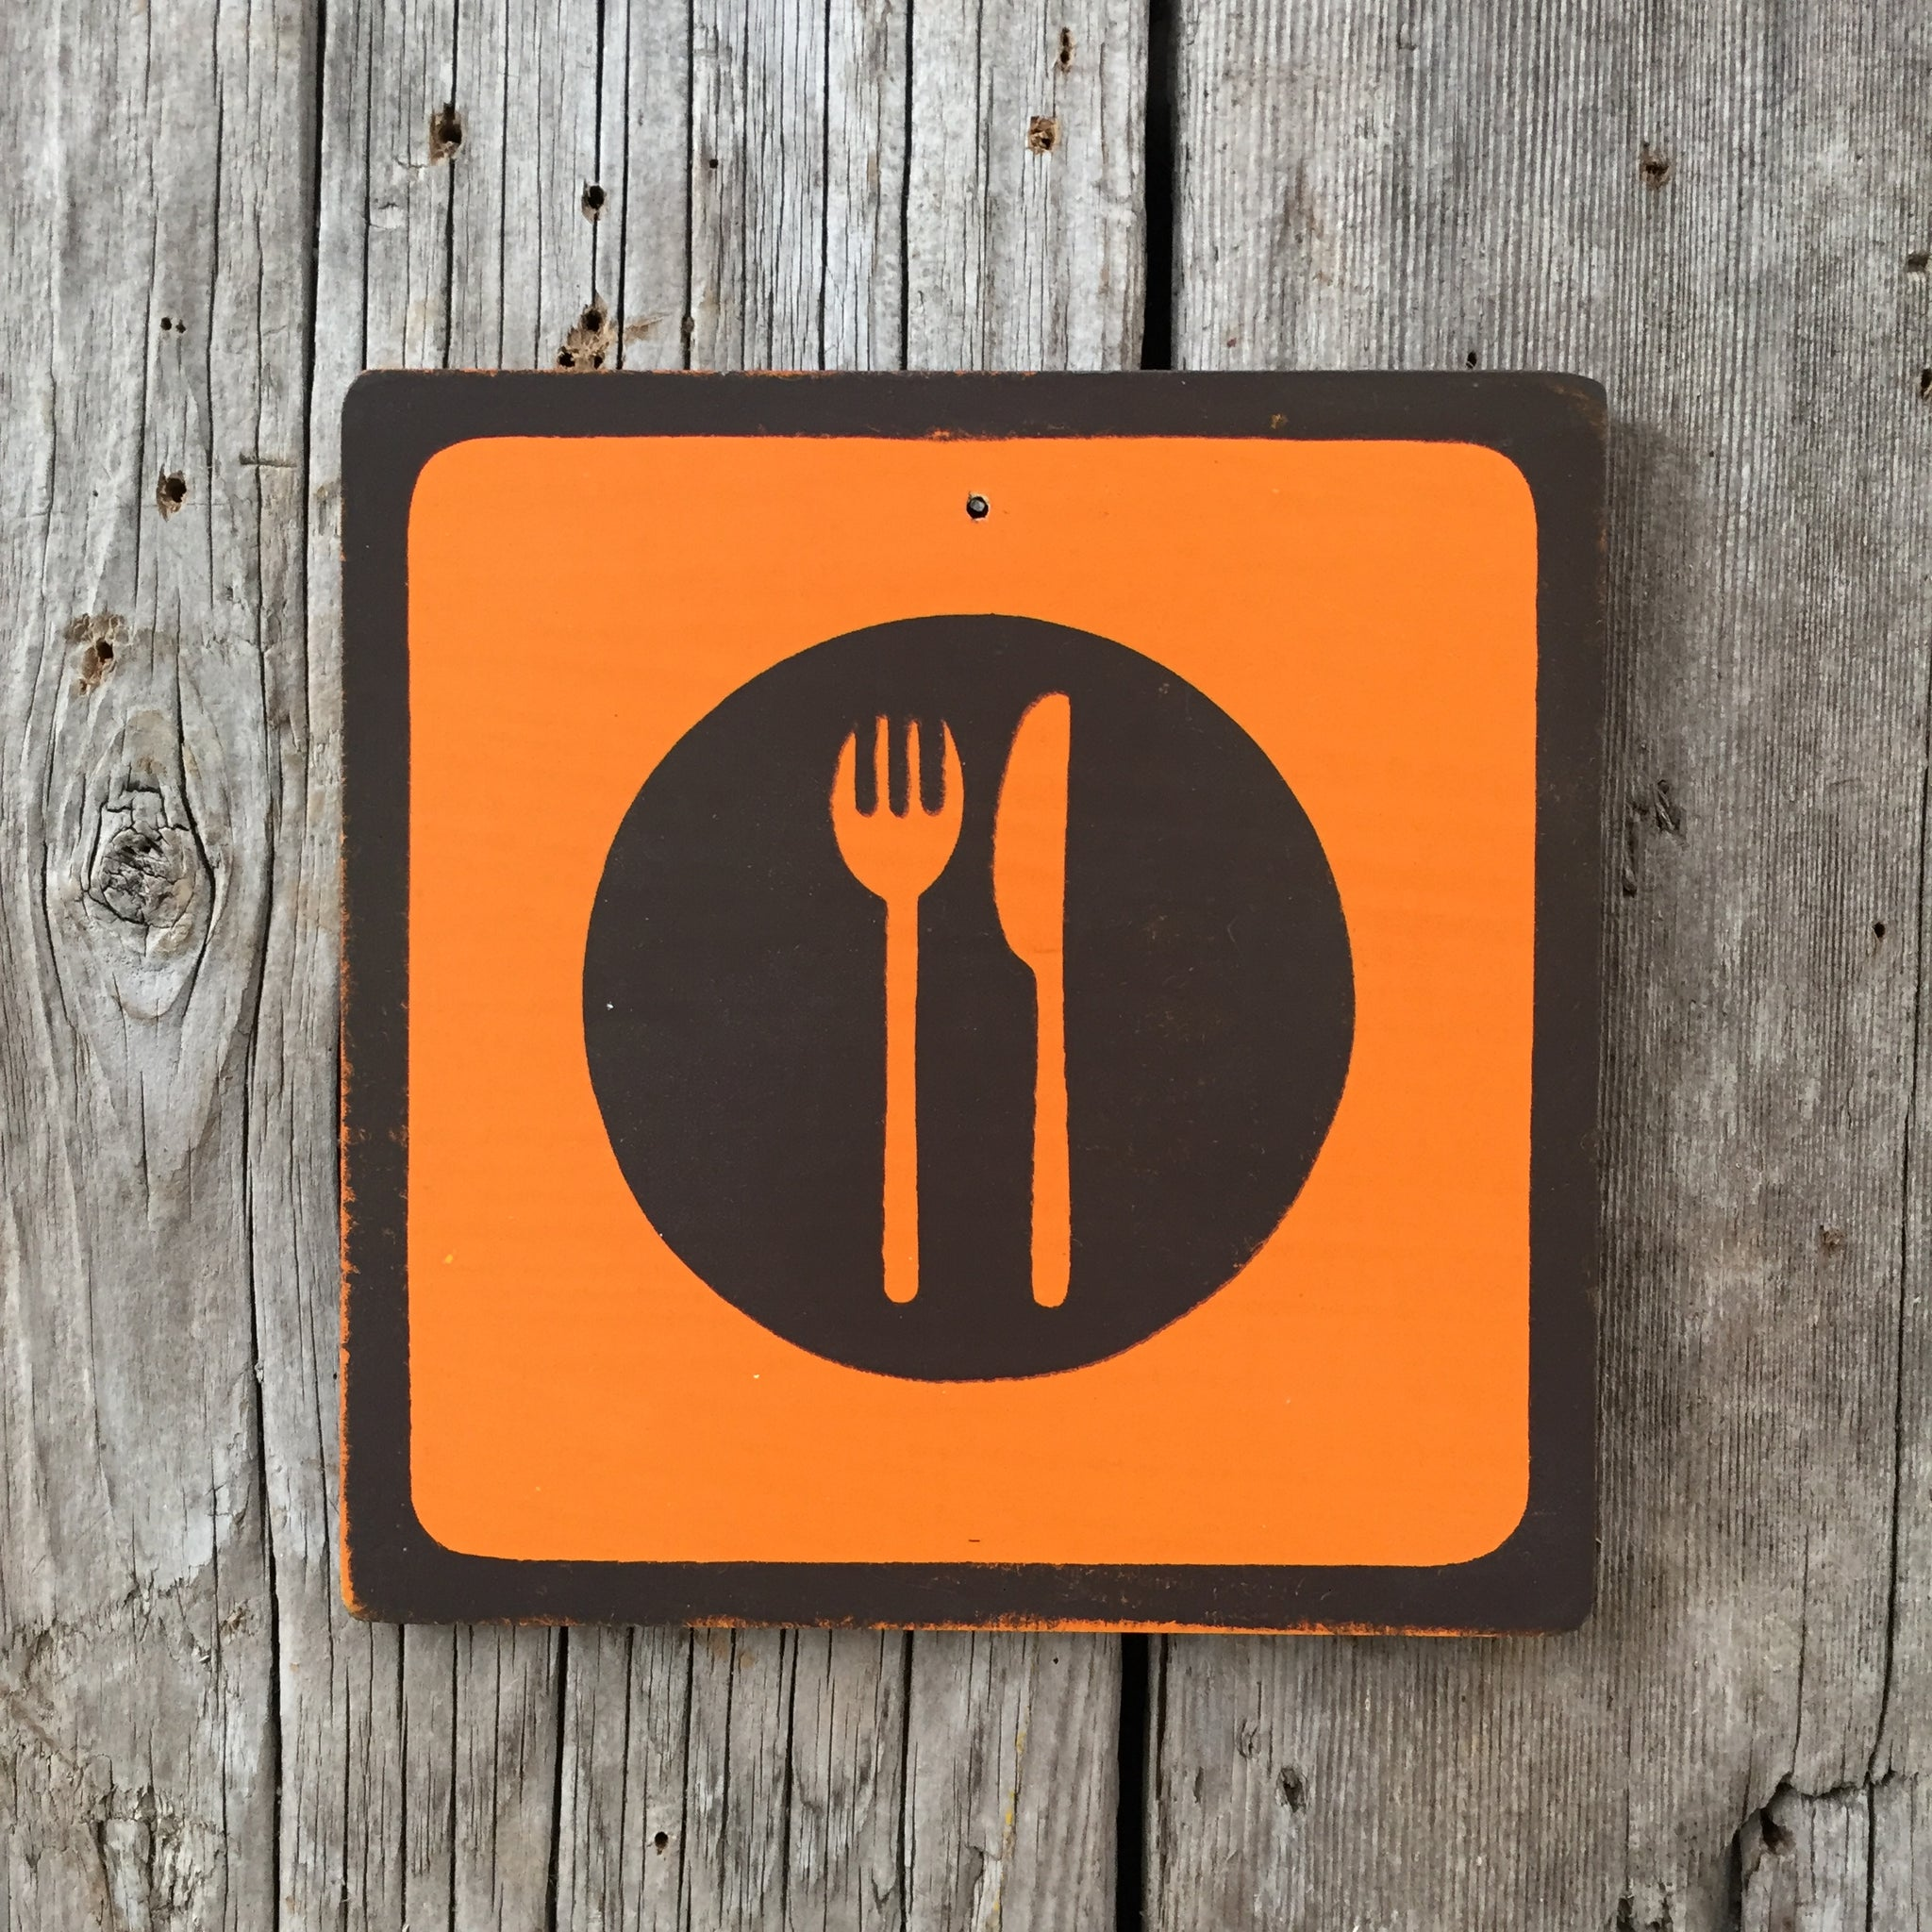 Handmade Vintage Park Diner Eat Outdoors Icon Sign